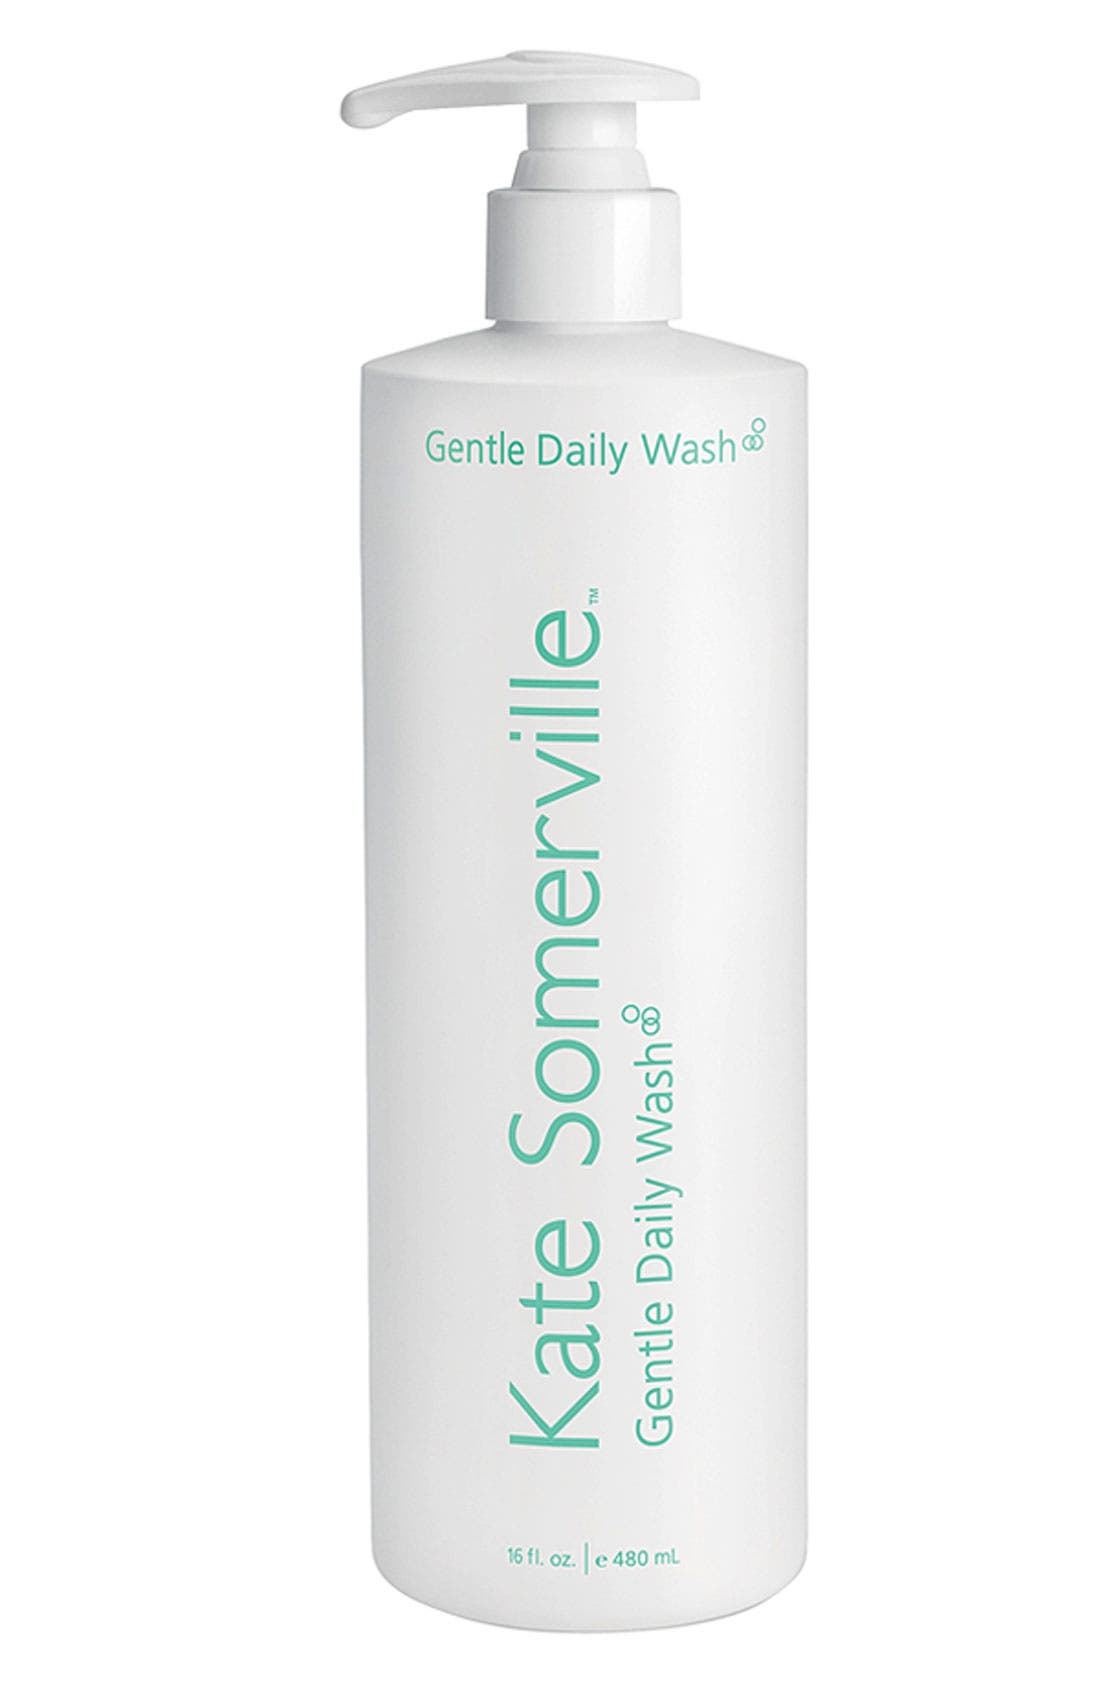 Kate Somerville Gentle Daily Wash ($128 Value)